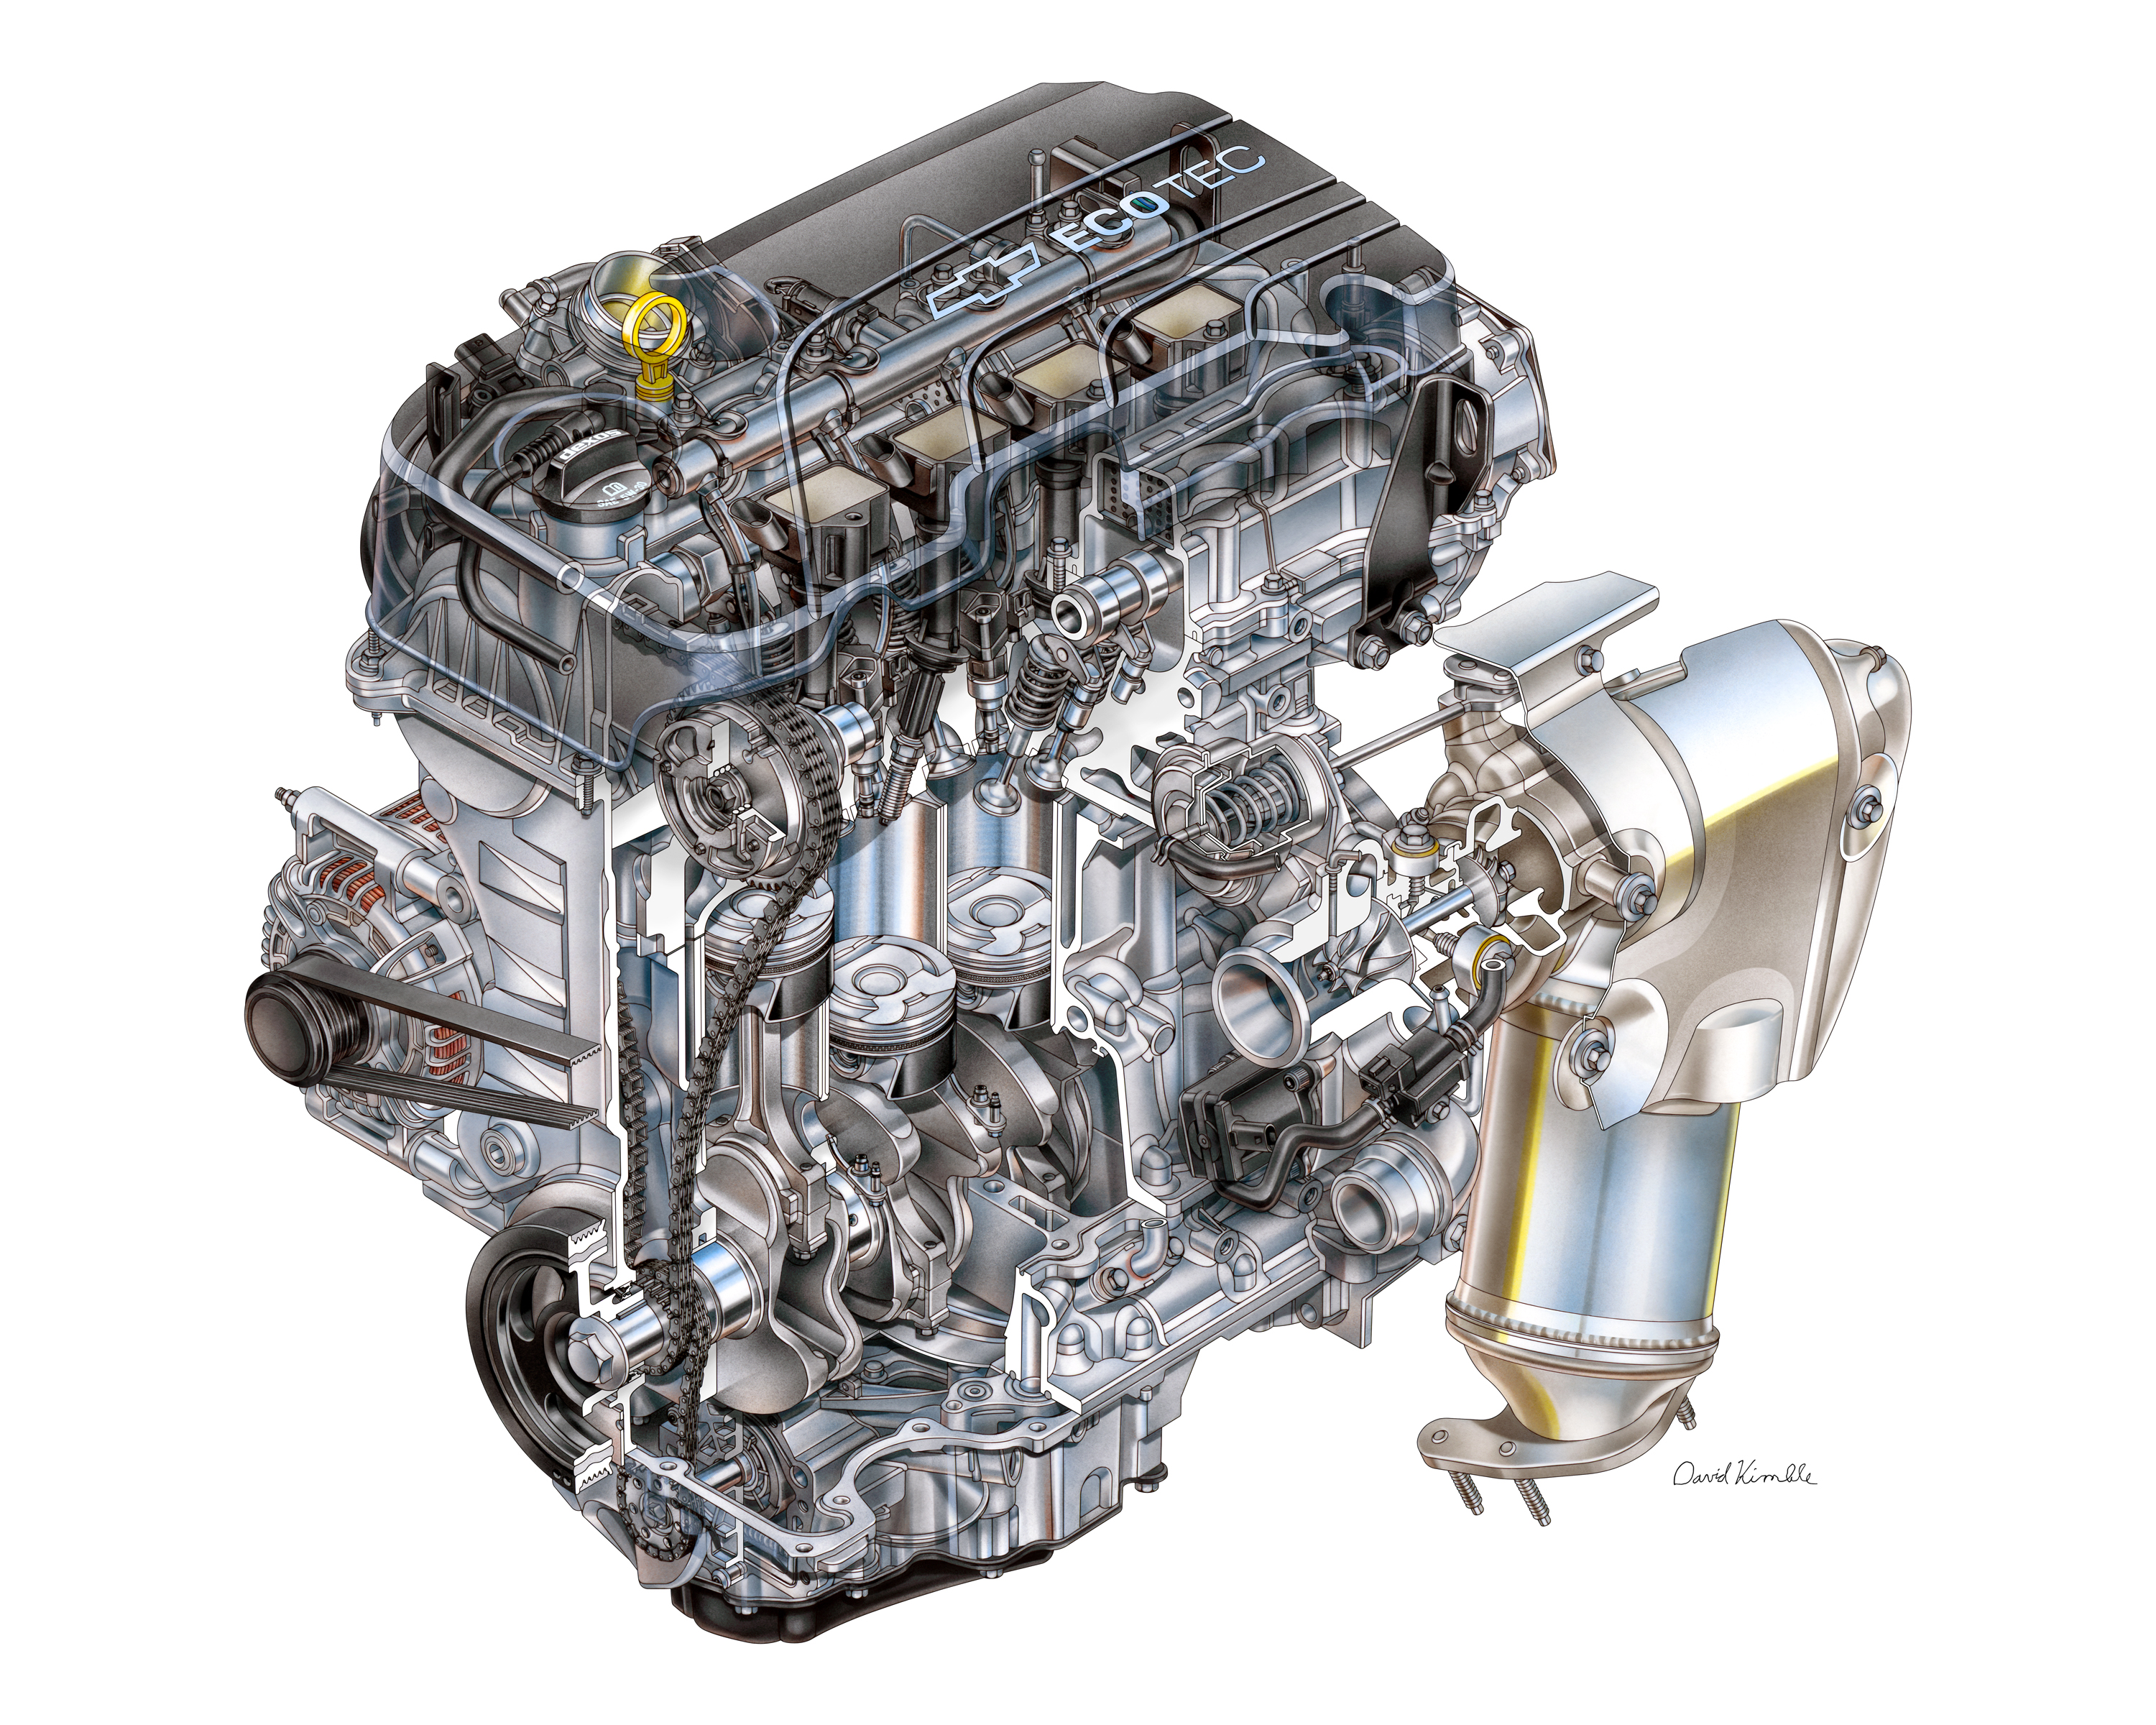 2016 Chevrolet Cruze Features New Ecotec Engines Chevy Timing Marks Diagram